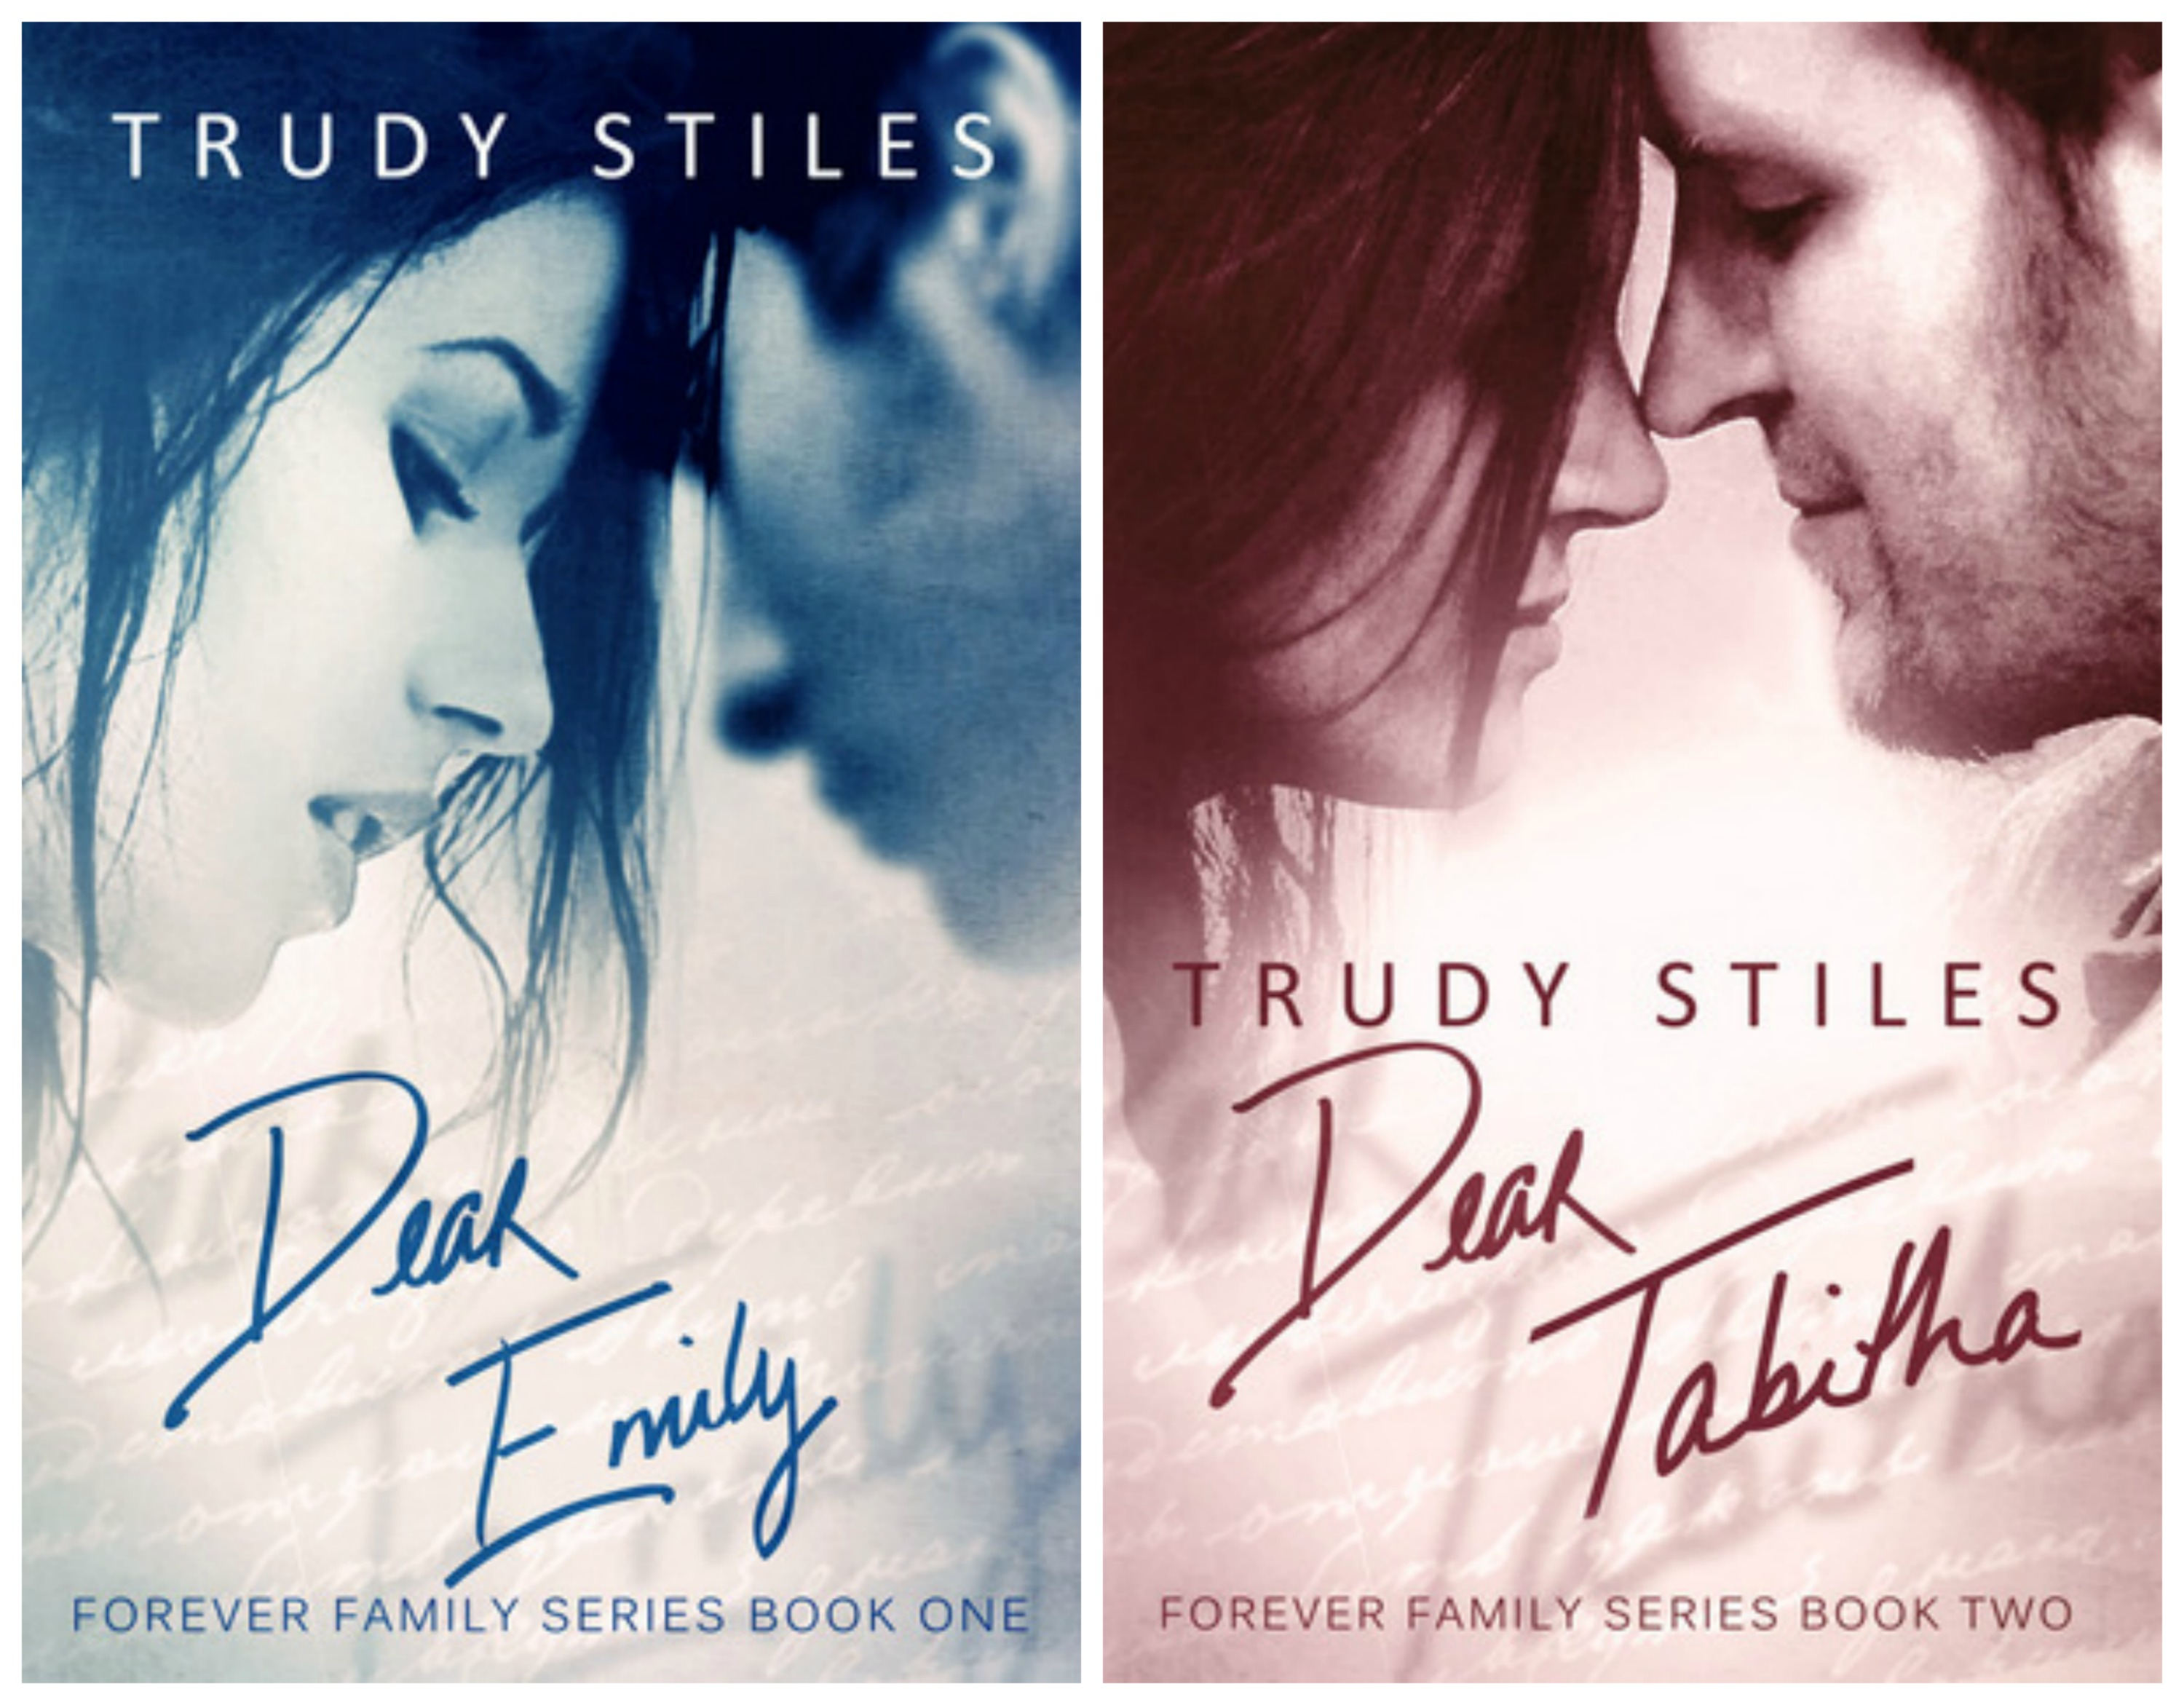 Trudy Stiles Dear Covers